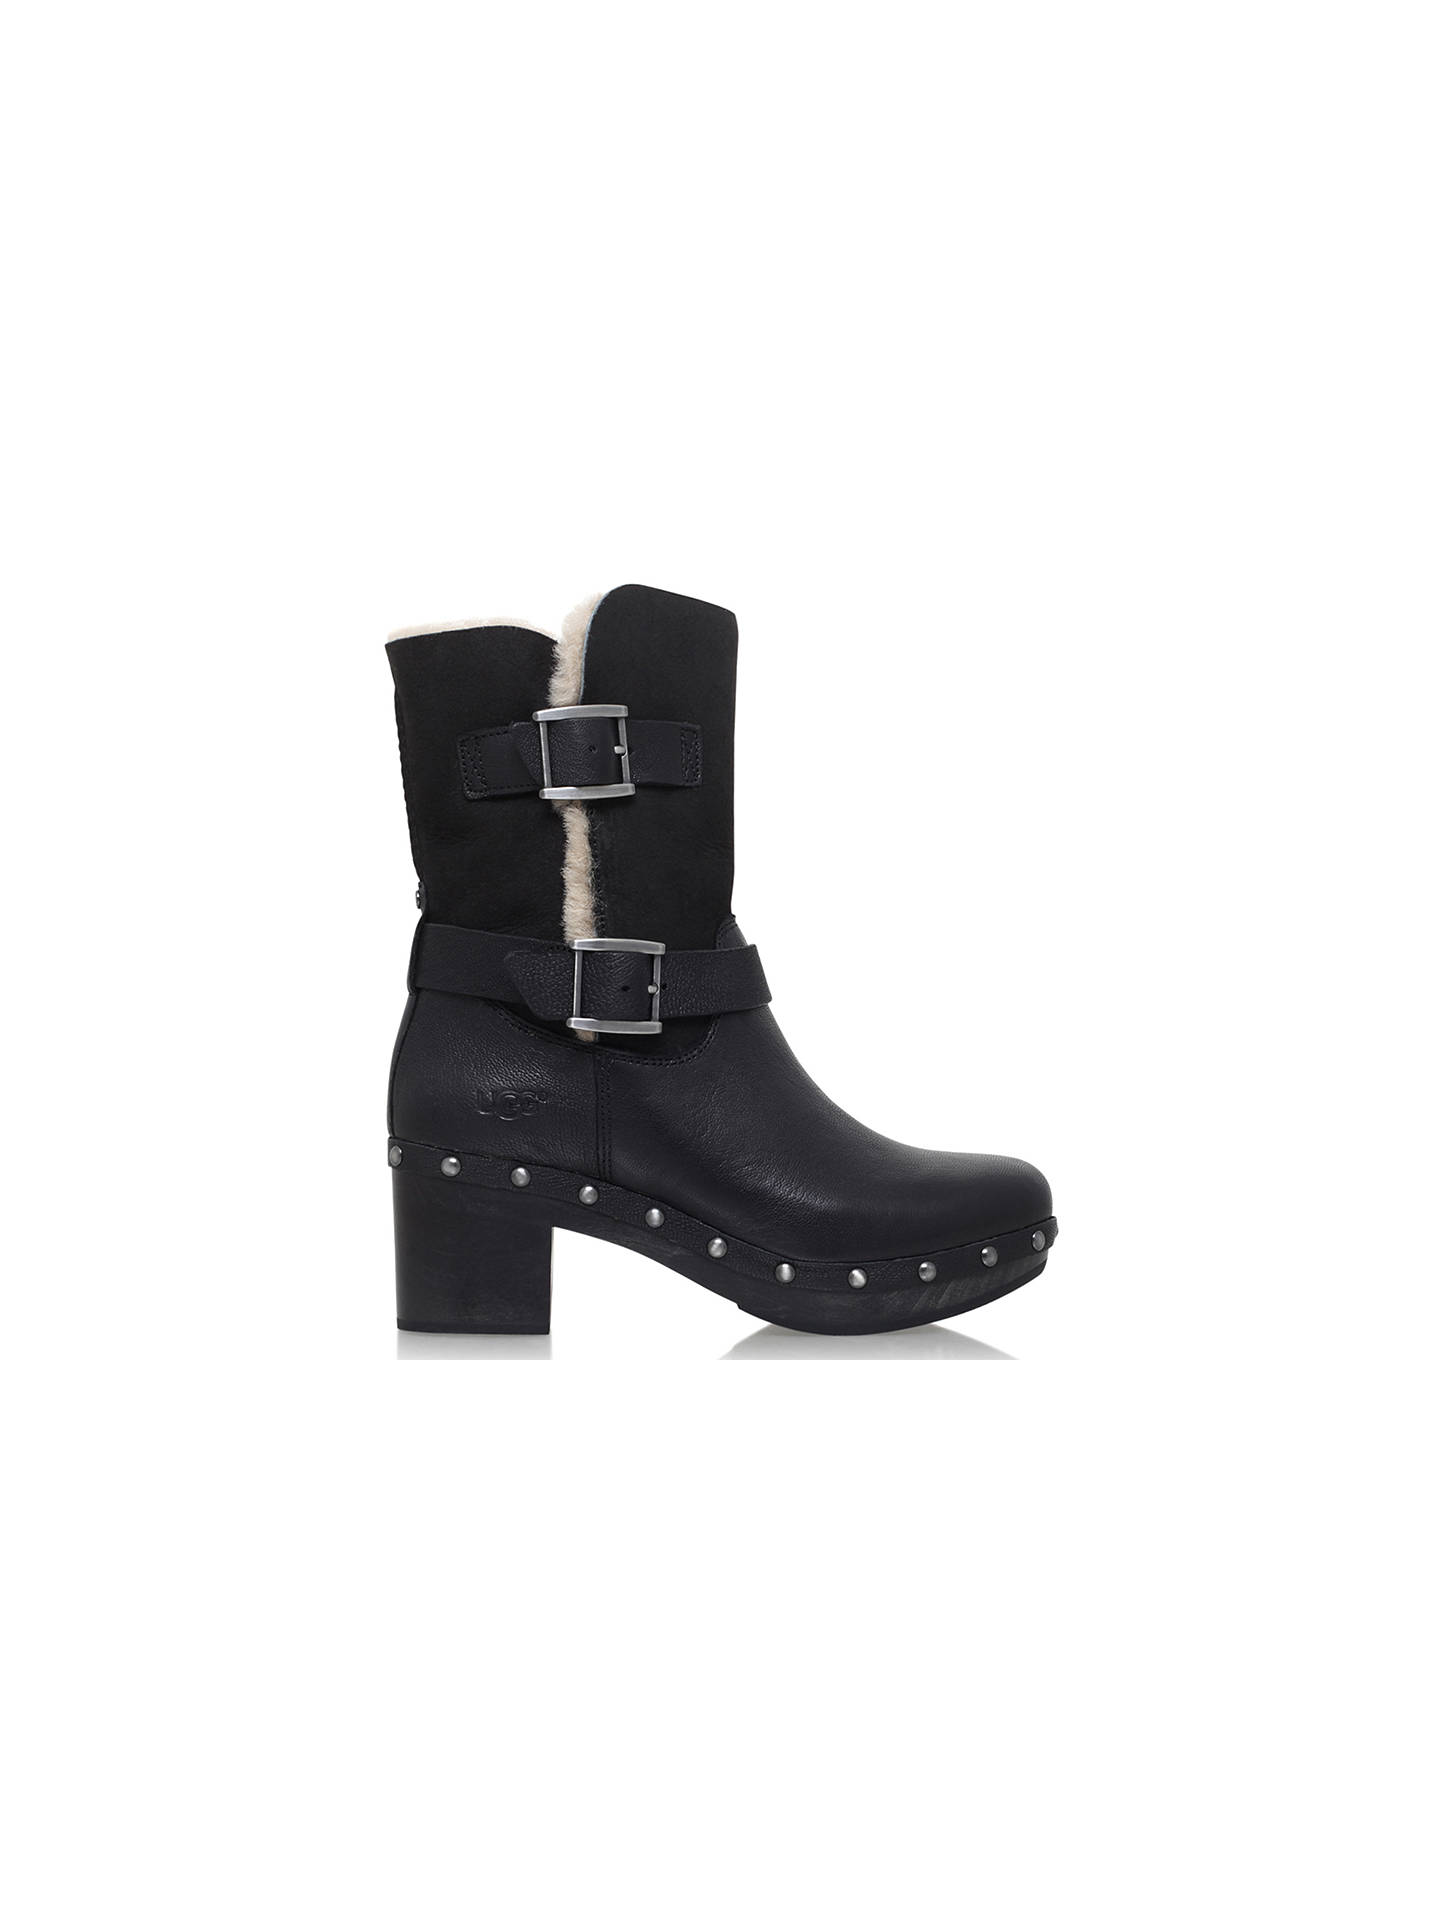 1746c68c4b7 UGG Brea Block Heeled Ankle Boots at John Lewis & Partners